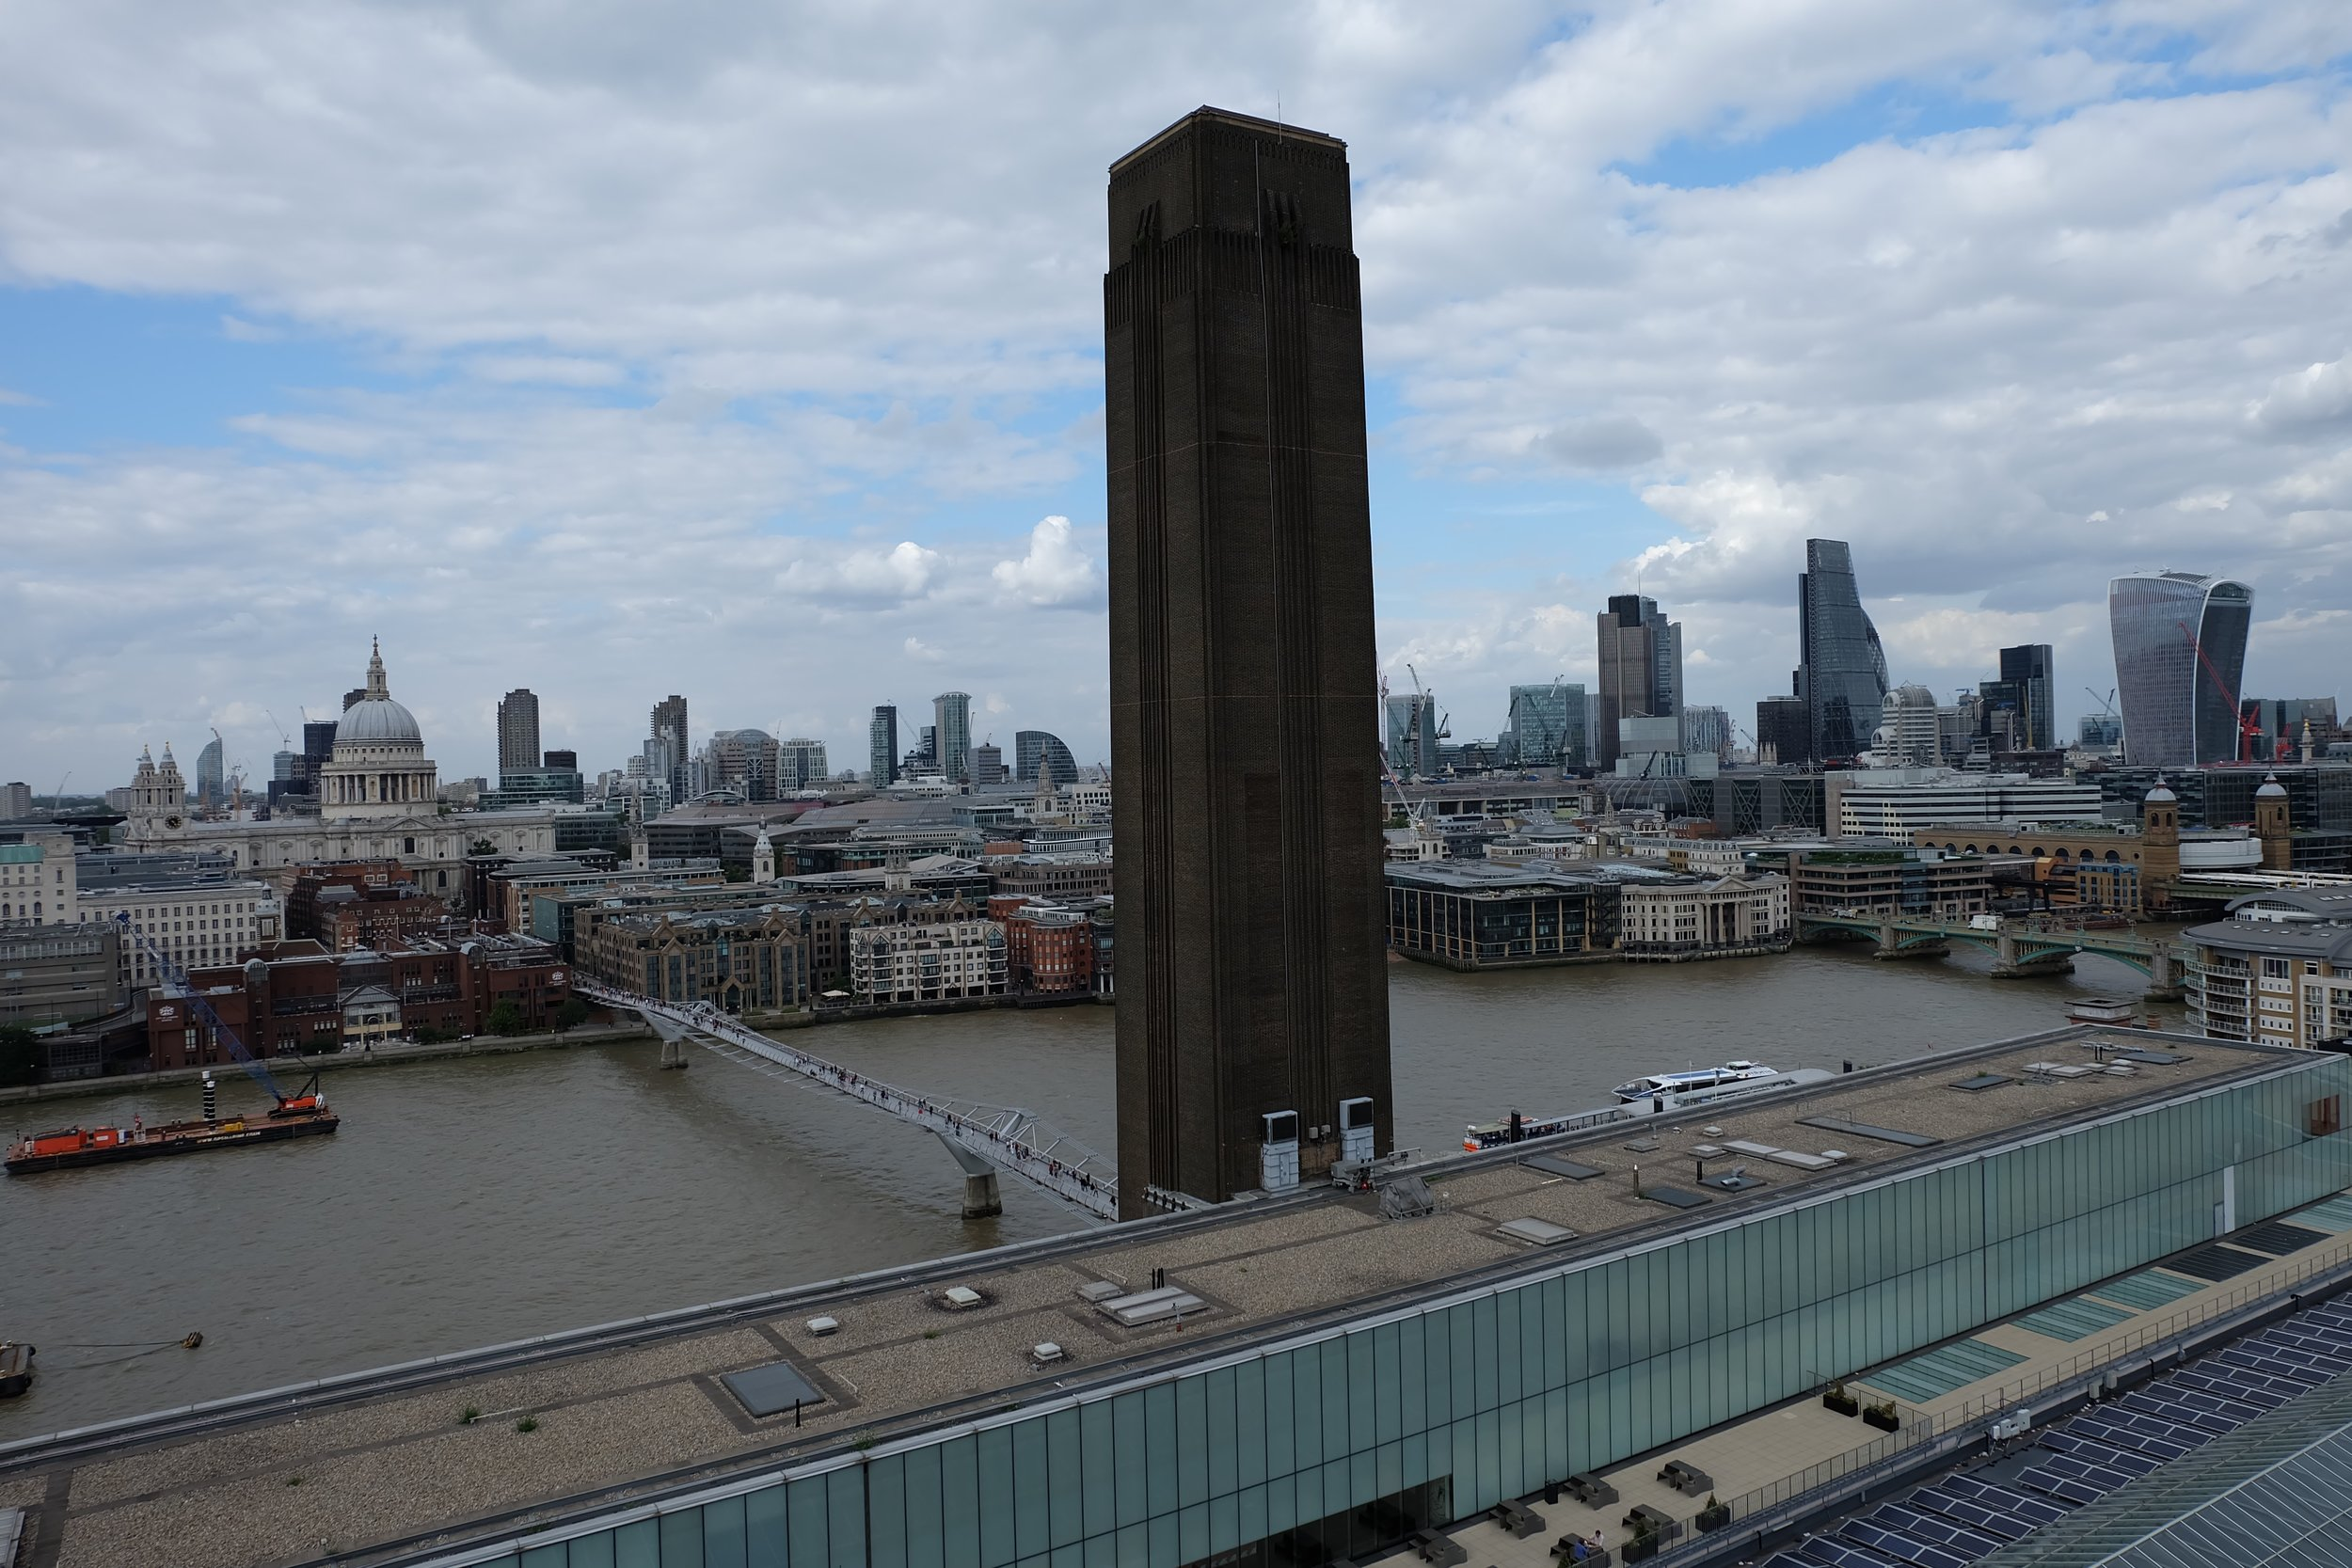 The view from the café at the top of the Tate